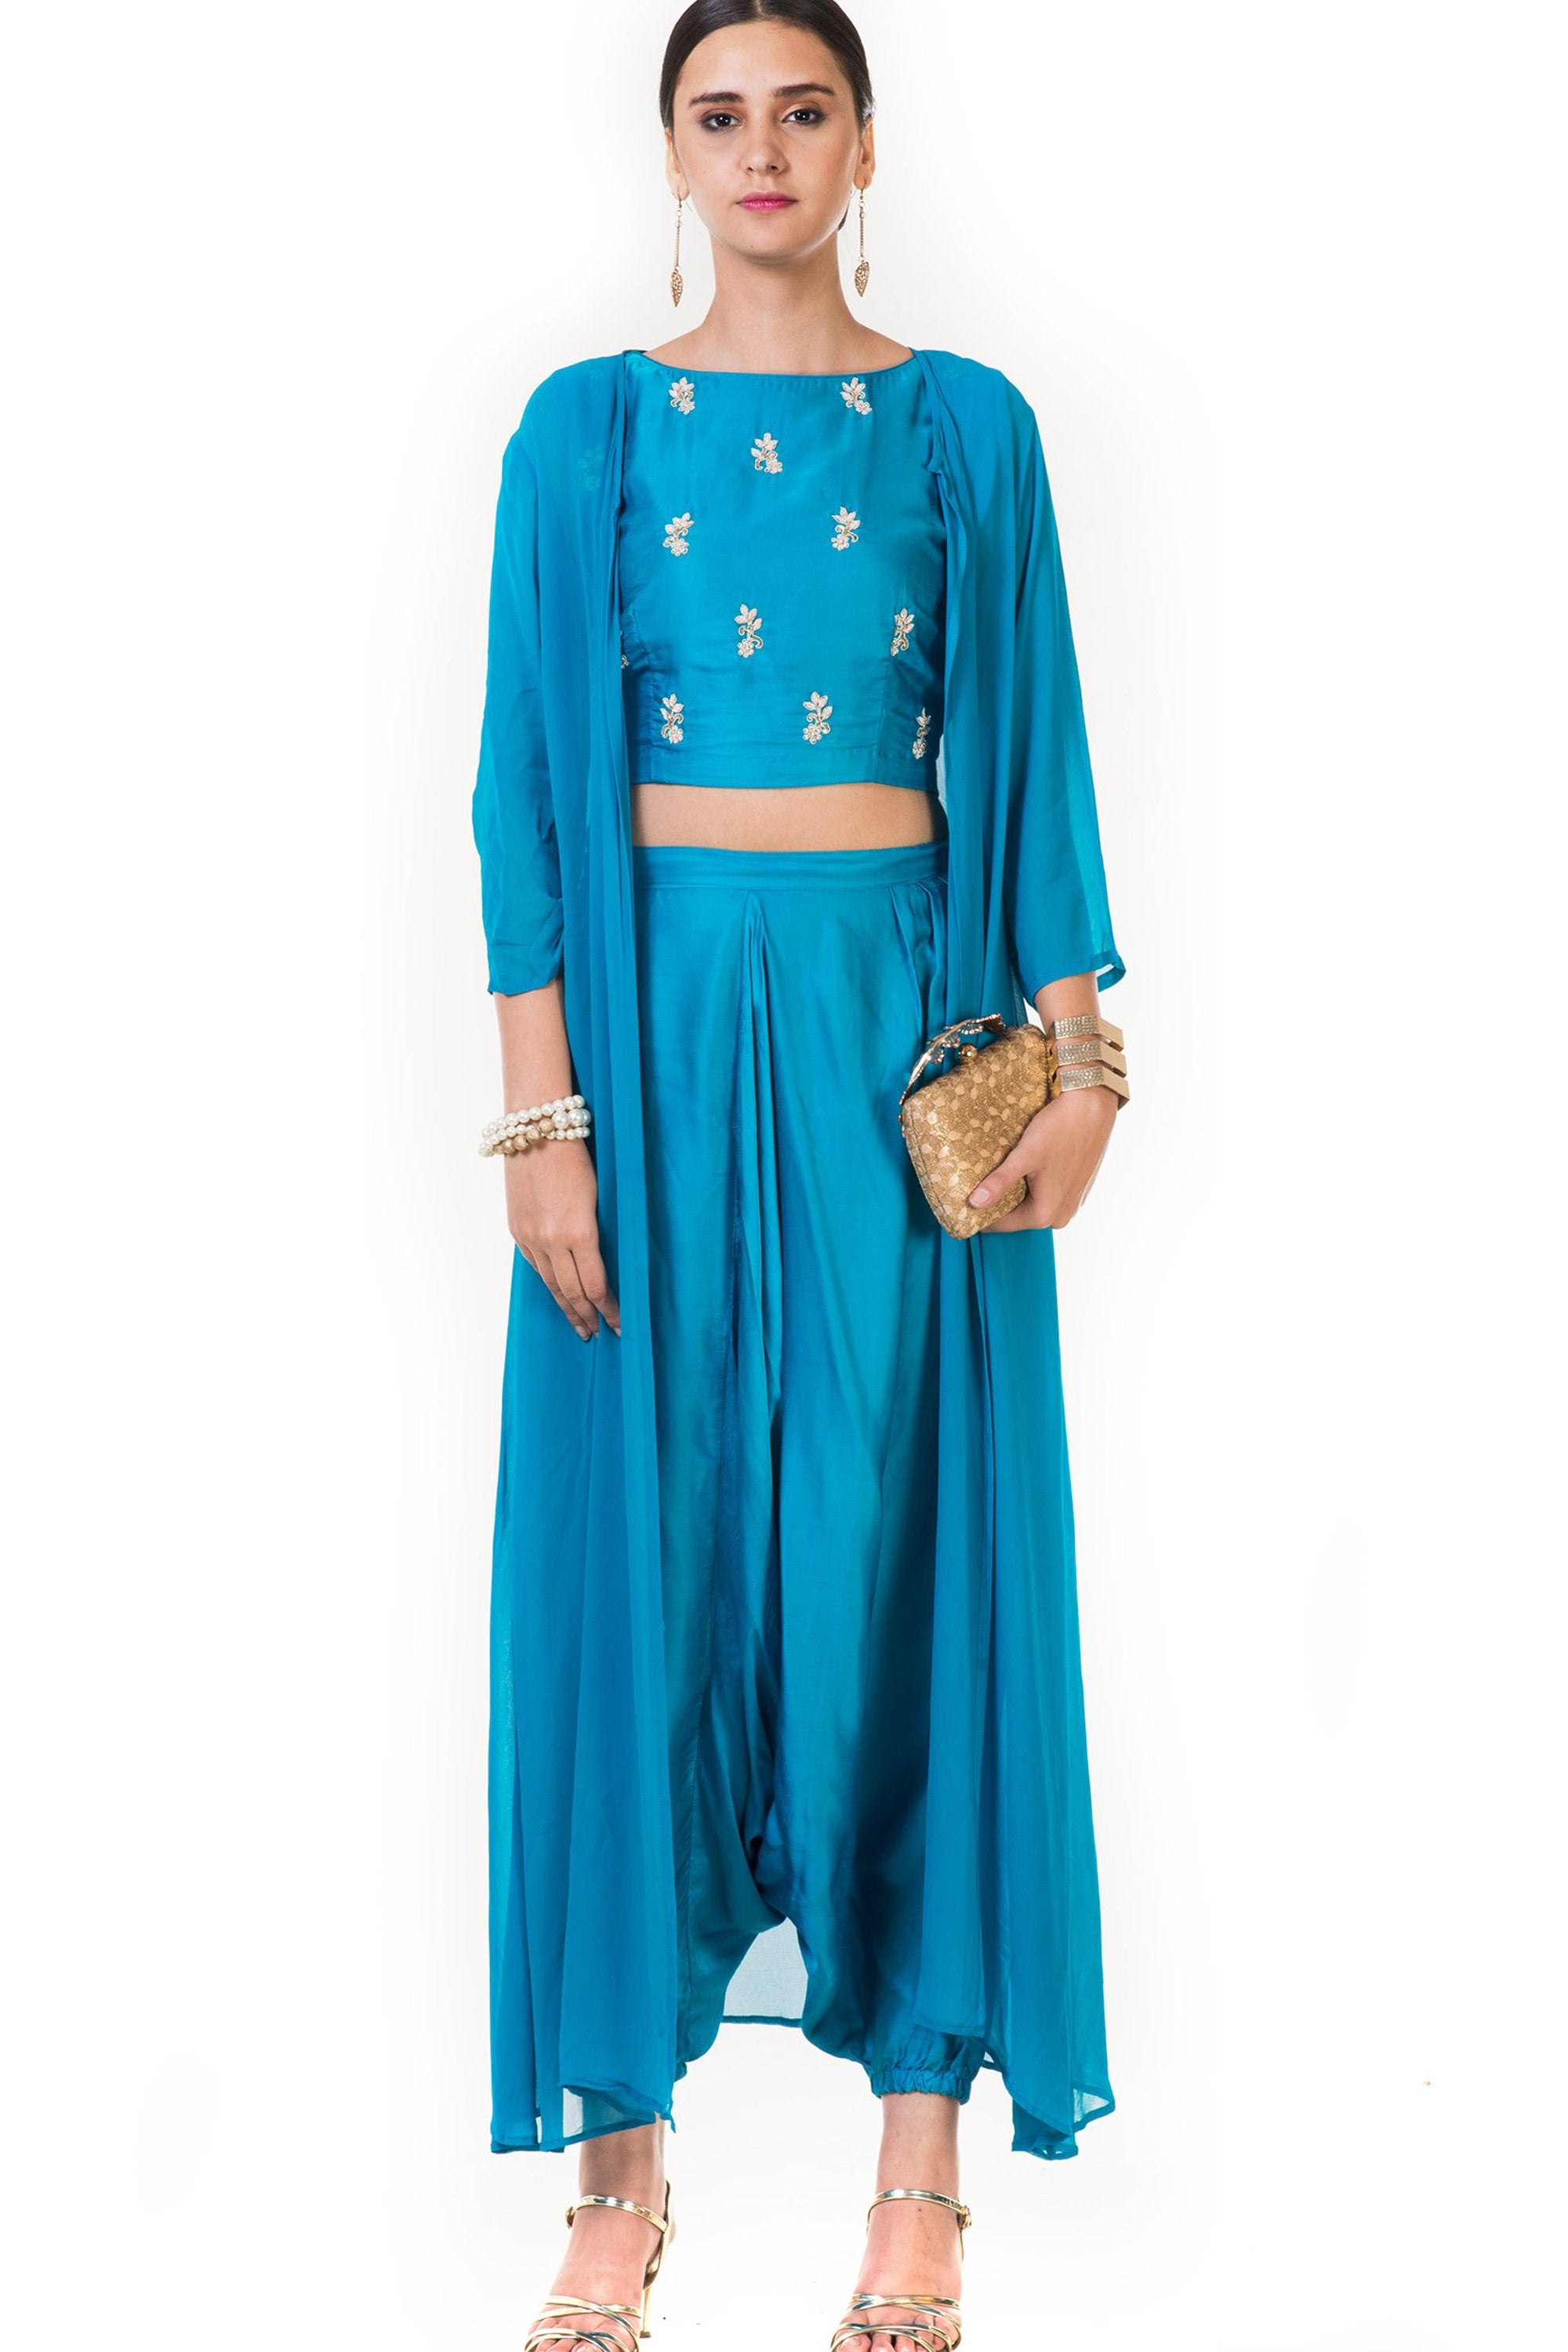 Blue Hand Embroidered Indo-western Dhoti & Crop Top Set with Cape FRONT